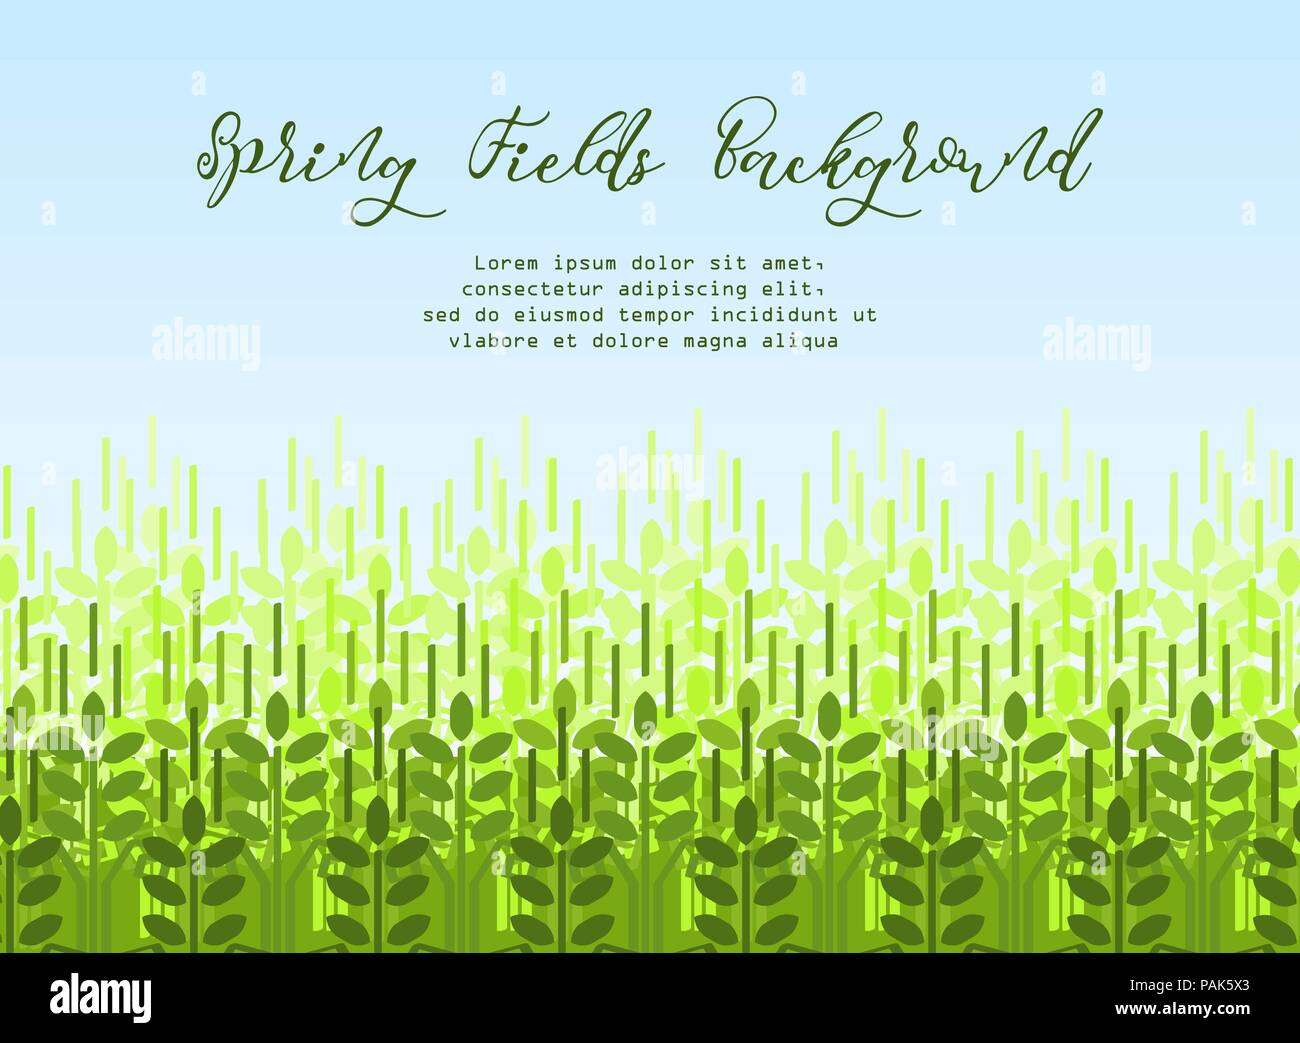 Wheat grain background. Spring agro pattern - Stock Vector